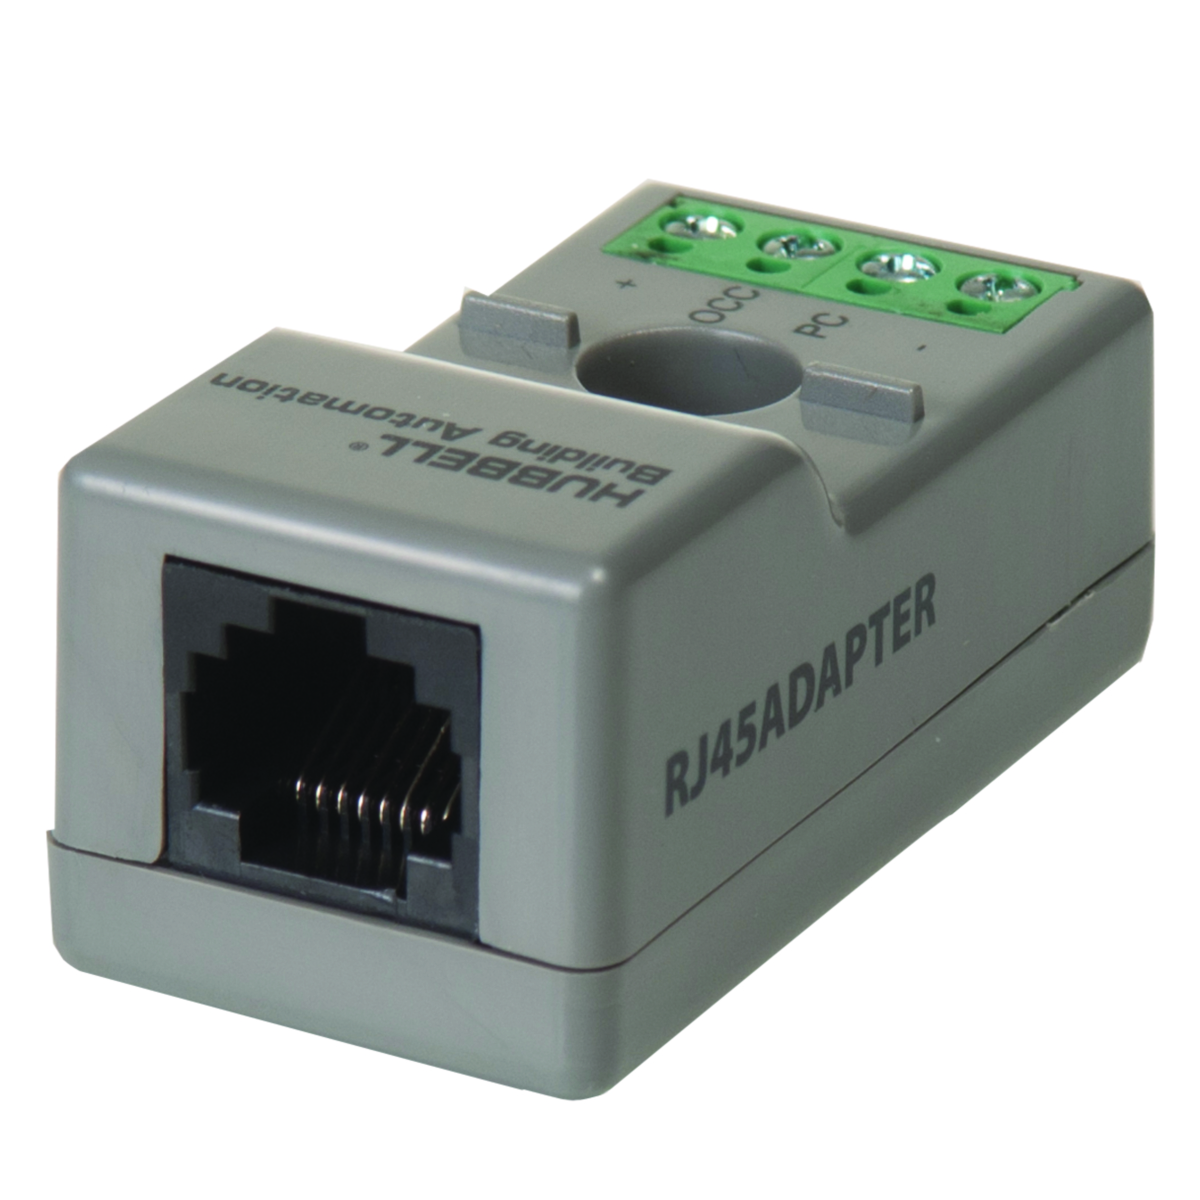 Rj45 Adapter And Cat5 System Cables Brand Hubbell Control Solutions Rj 45 Wiring